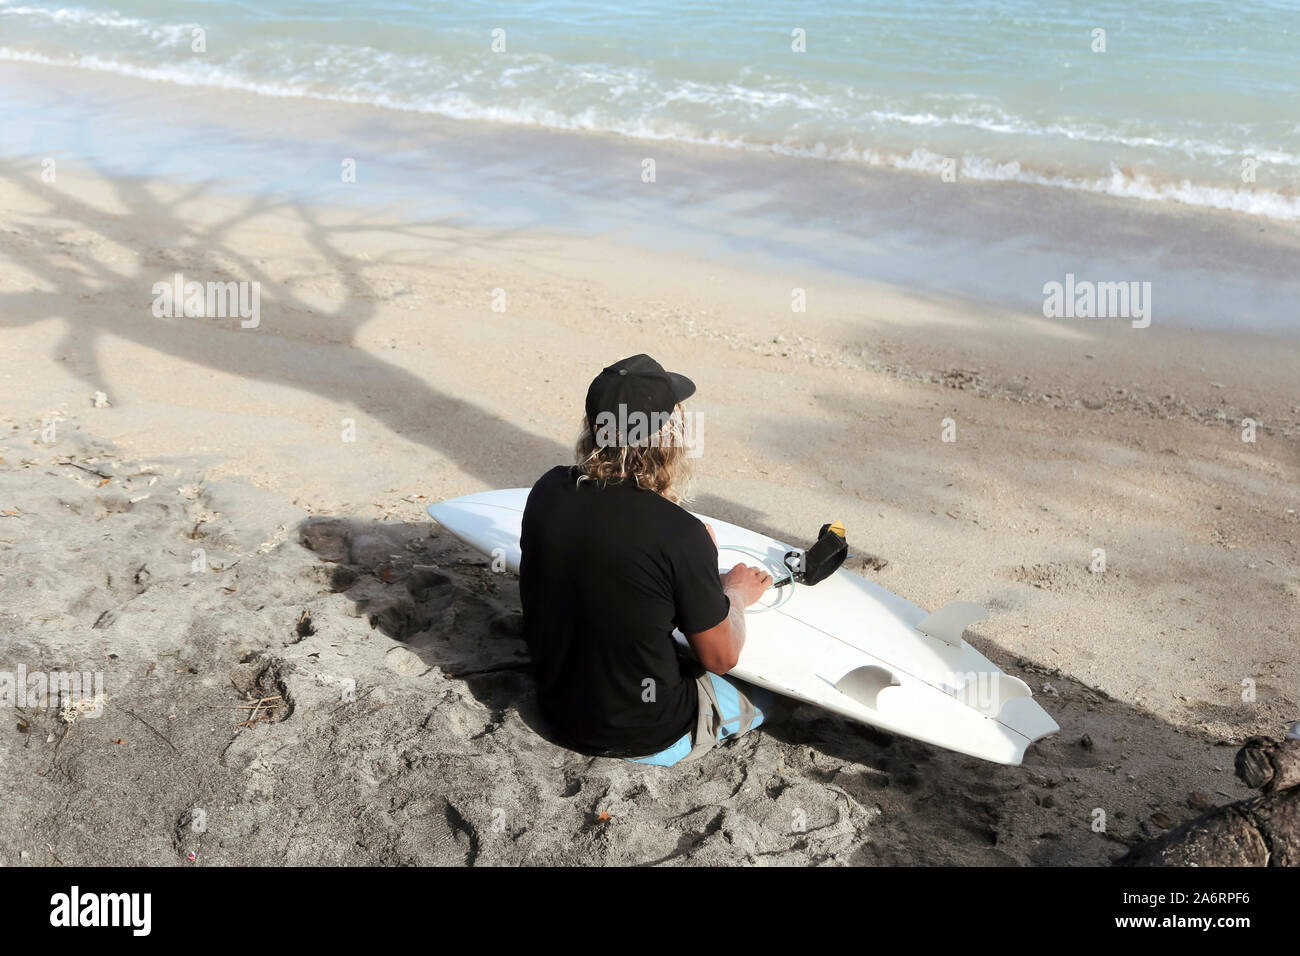 Title Surfer with surfboard at beach Stock Photo